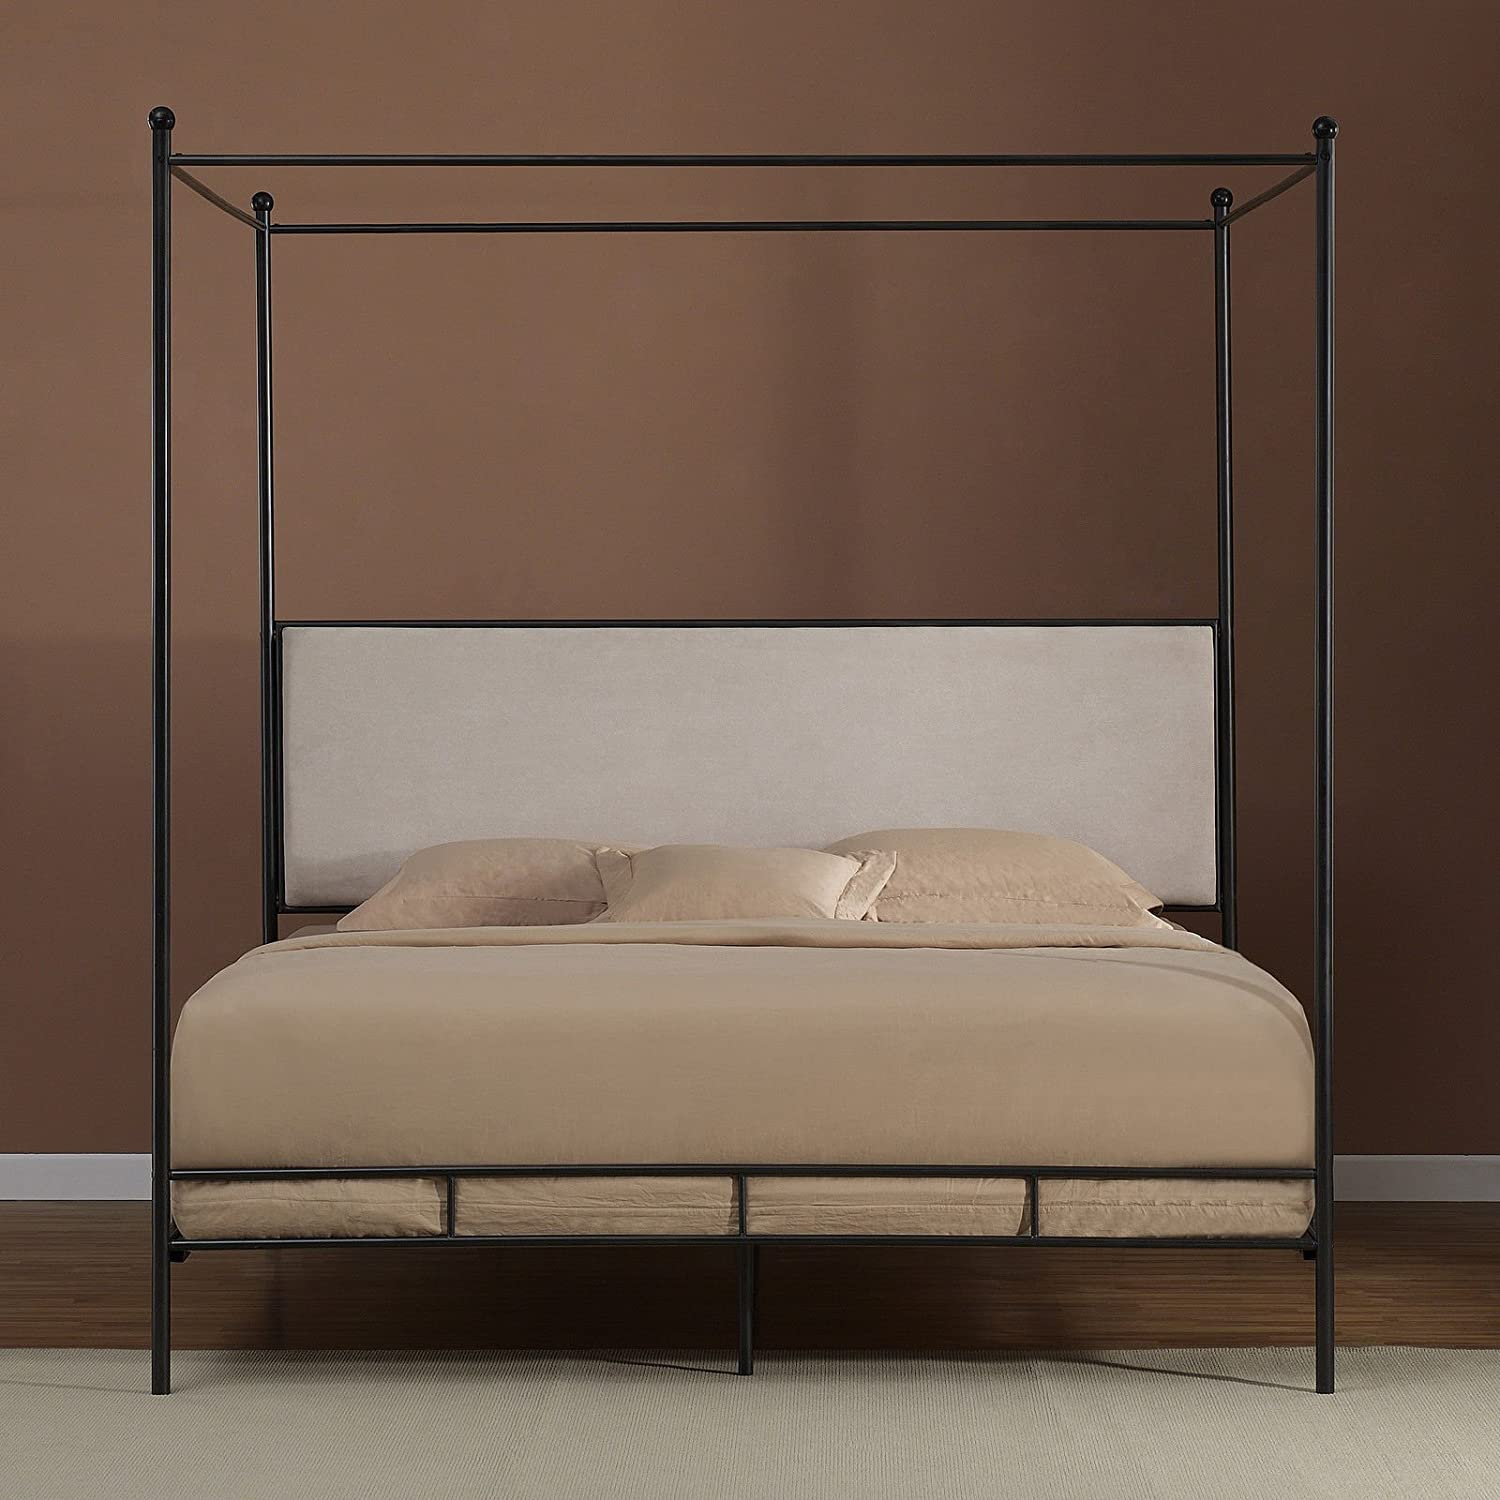 & Amazon.com: Lauren King Metal Canopy Bed: Kitchen u0026 Dining